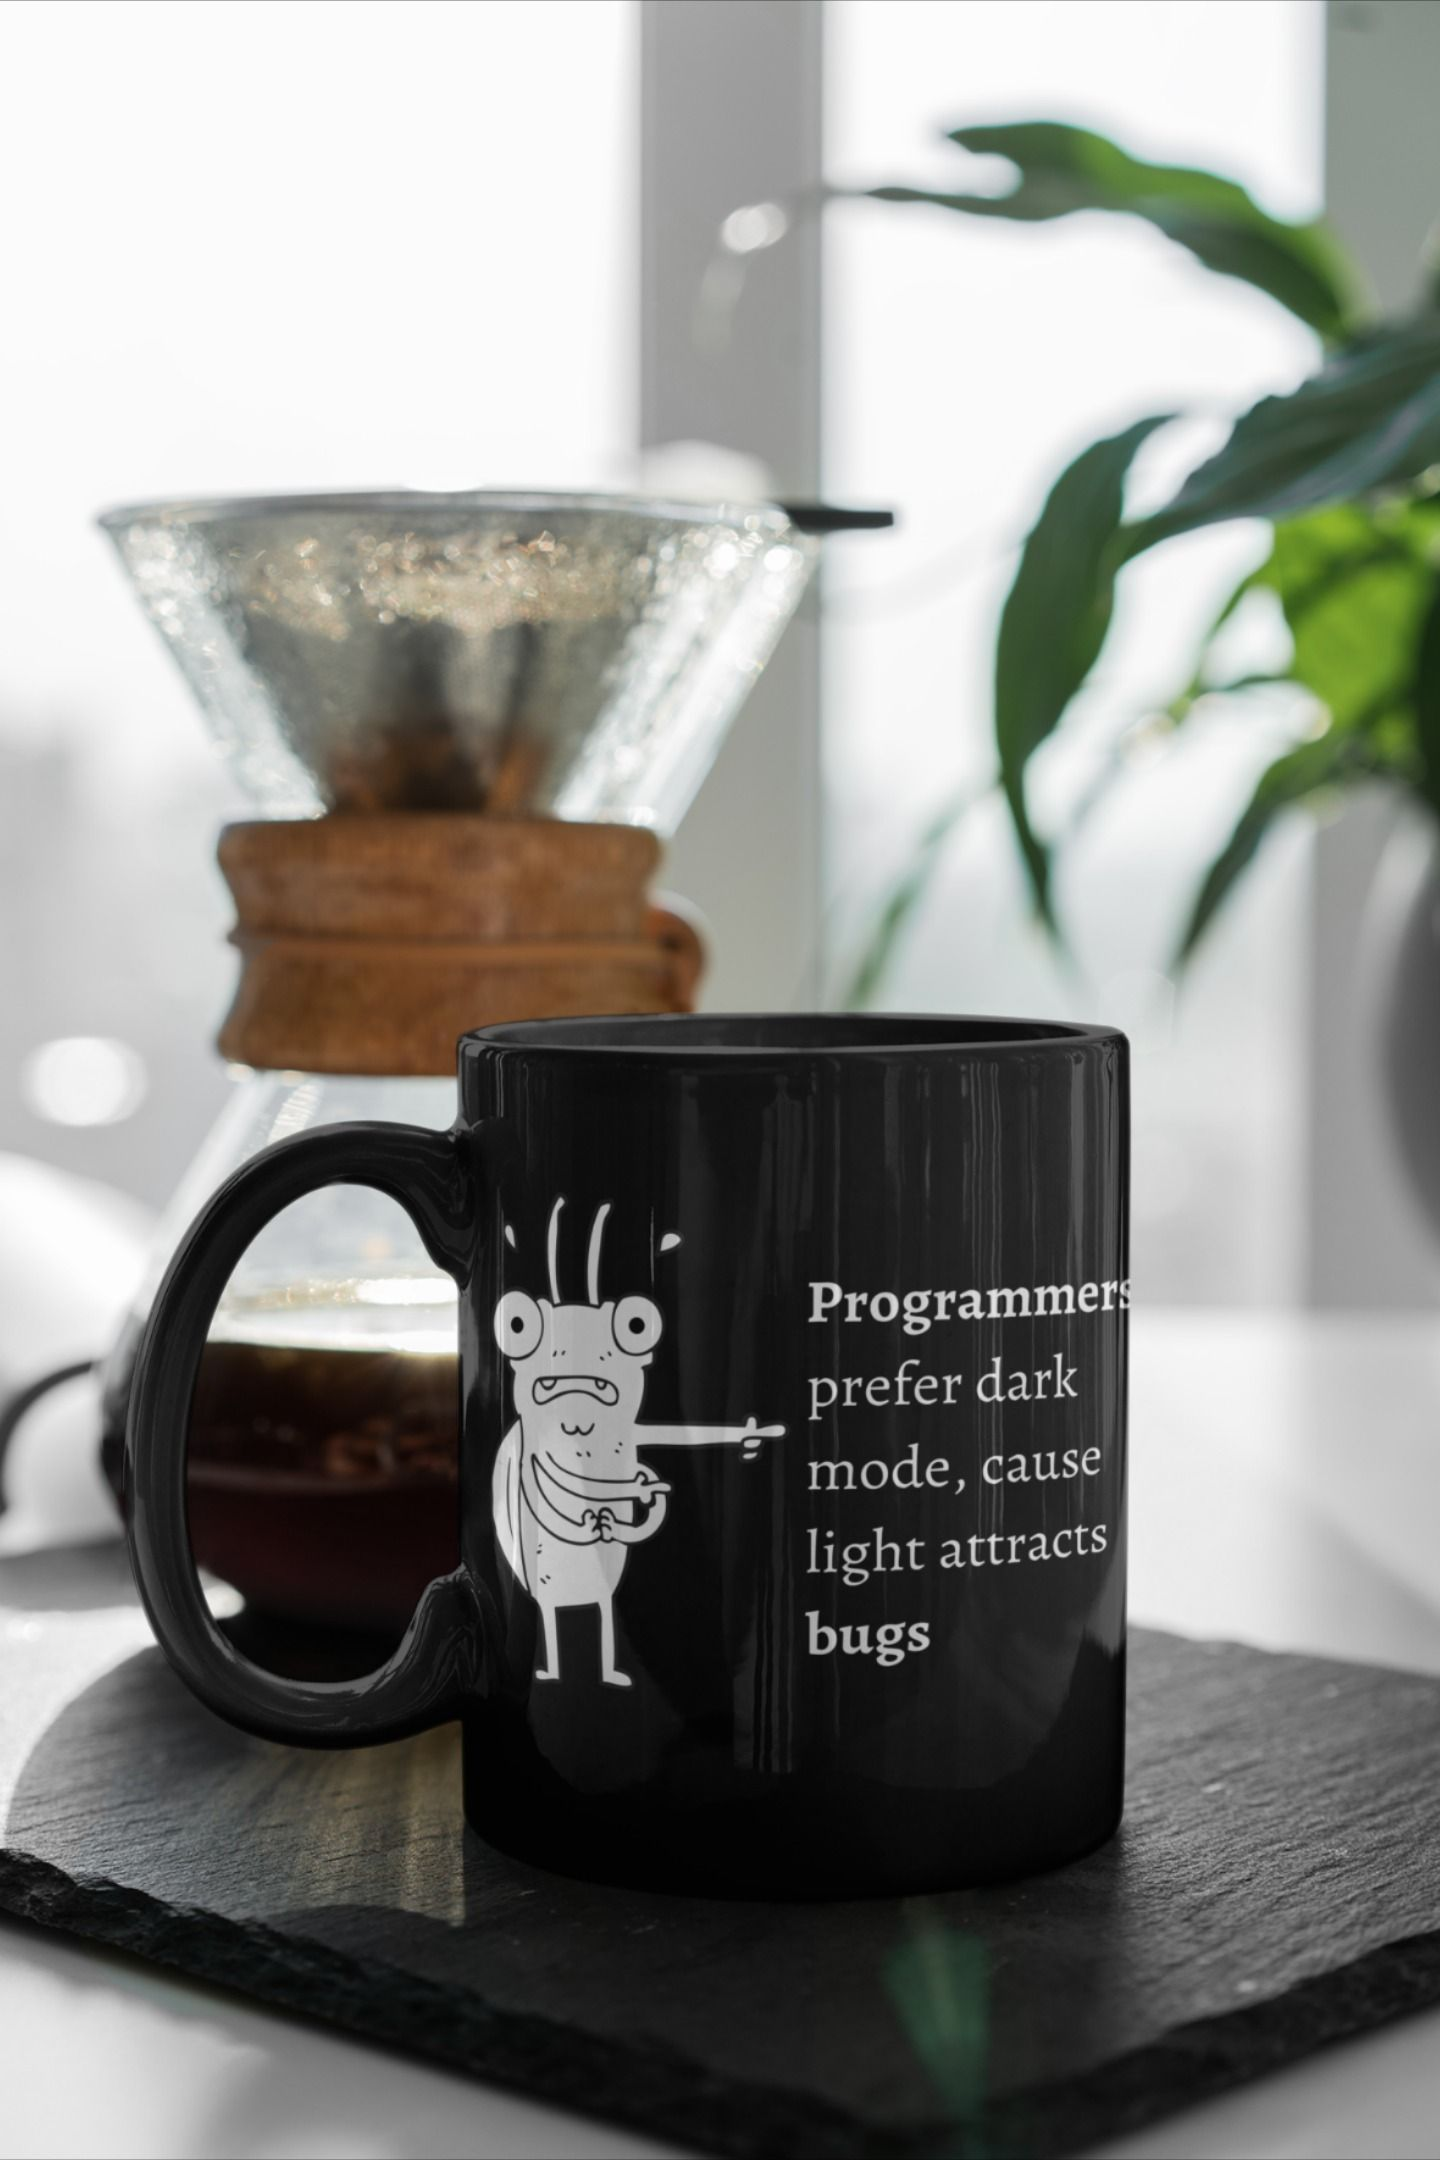 Funny Gifts For A Scottish Man : funny, gifts, scottish, Funny, Programmer, Gift,, Coder, Developer, Programmer,, Sugar, Skull, Mugs,, Gifts, Programmers